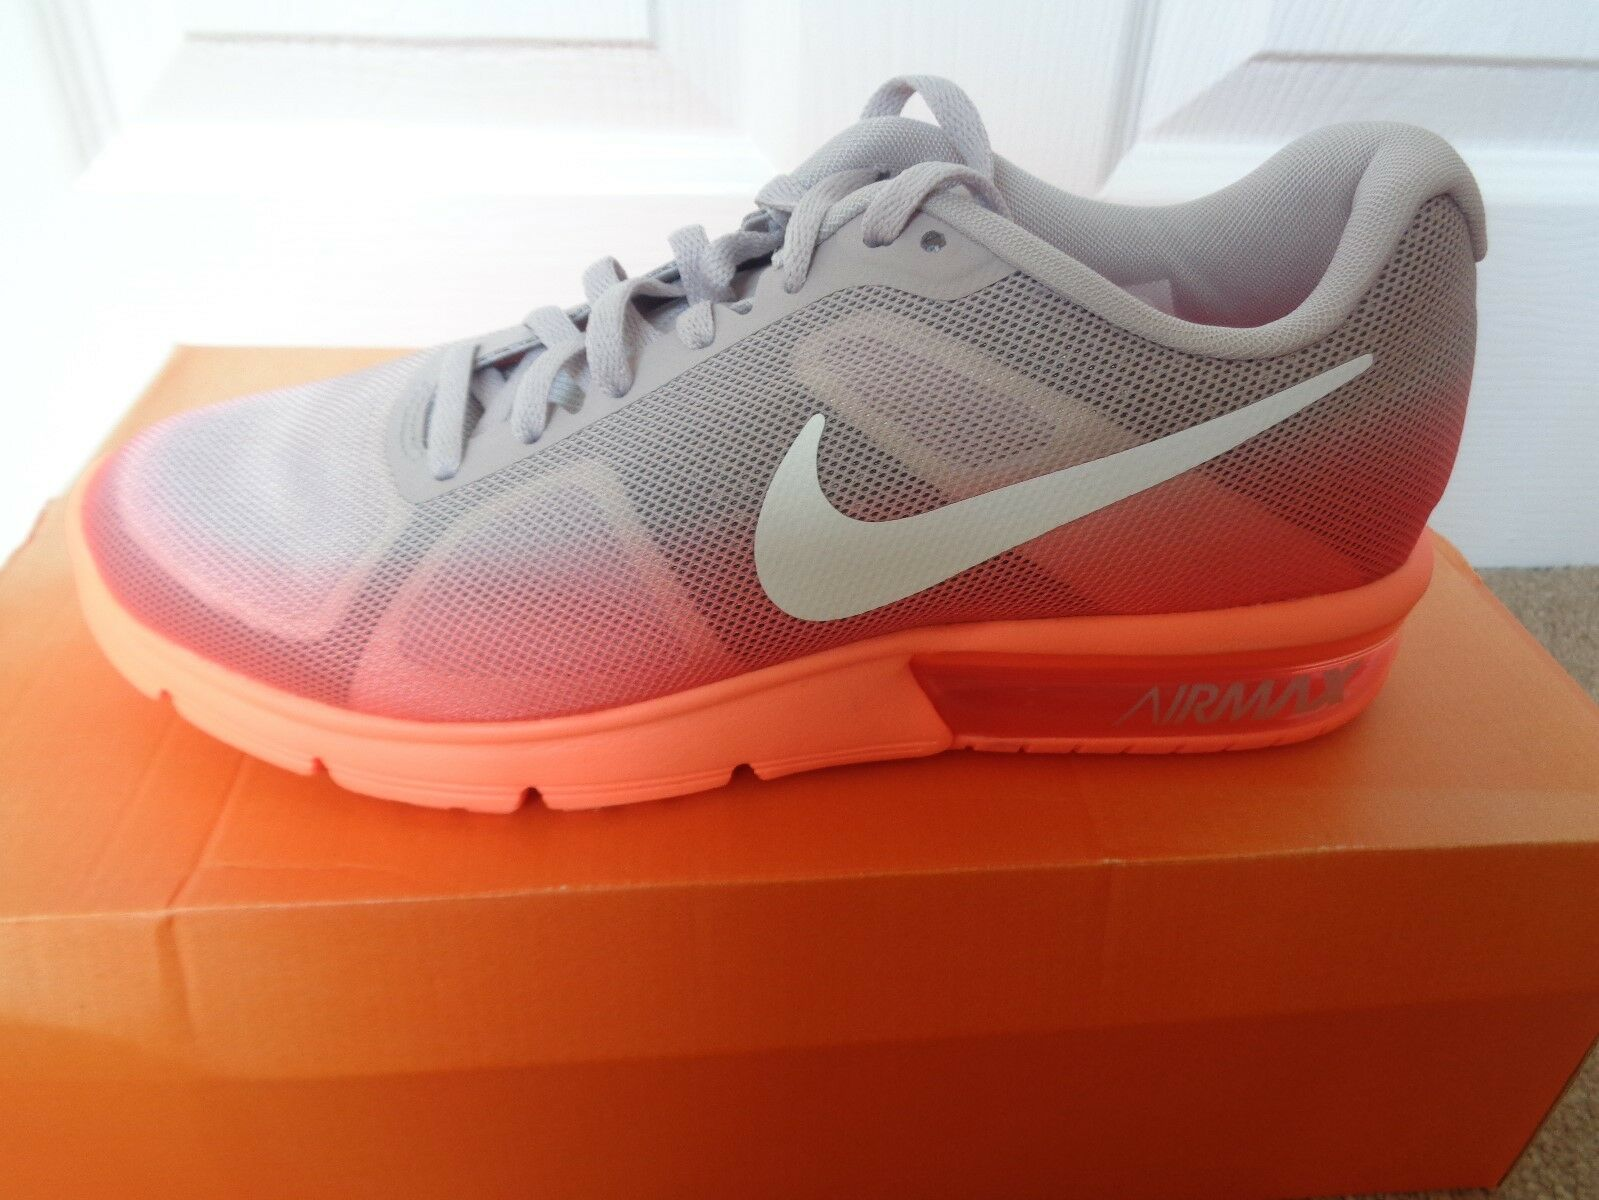 Nike Air Max Sequent trainers shoes 719916 802 uk 4.5 eu 38 us 7 NEW IN BOX